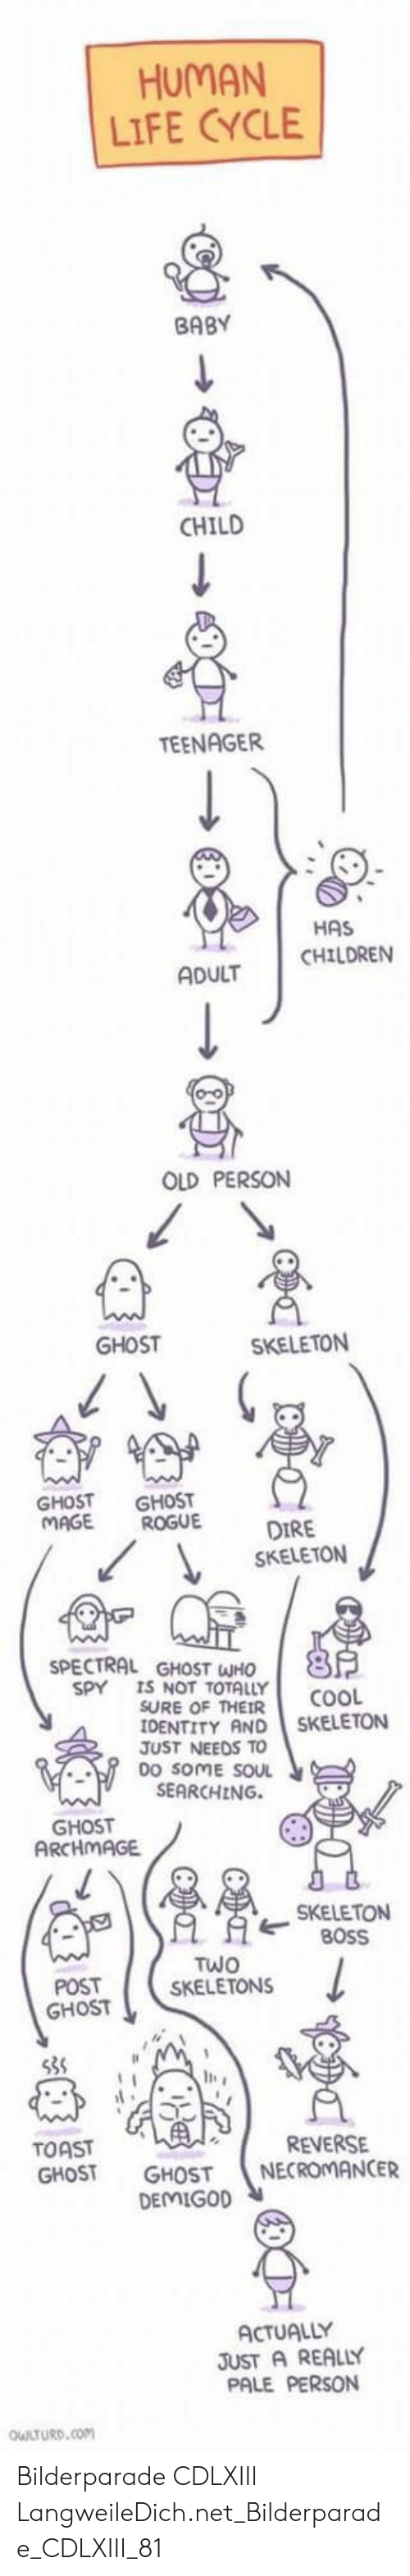 Human Life: HUMAN  LIFE CYCLE  BABY  CHILD  TEENAGER  HAS  ADULT CHILDREN  OLD PERSON  GHOST  SKELETON  GHOST GHOST  MAGE ROGU  DIRE  SKELETON  SPECTRAL GHOST WHO  SPY  IS NOT TOTALLY  SURE OF THEIR  IDENTITY AND SKELETON  JUST NEEDS TO  0O SOME SOUL  COOL  SEARCHING.  GHOST  ARCHMAGE  SKELETON  ピBOSS  TWO  SKELETON!S  POST  GHOST  le  TOAST  GHOST GHOST NECROMANCER  REVERSE  DEMIGOD  ACTUALLY  JUST A REALLY  PALE PERSON  LTURD,Com Bilderparade CDLXIII LangweileDich.net_Bilderparade_CDLXIII_81